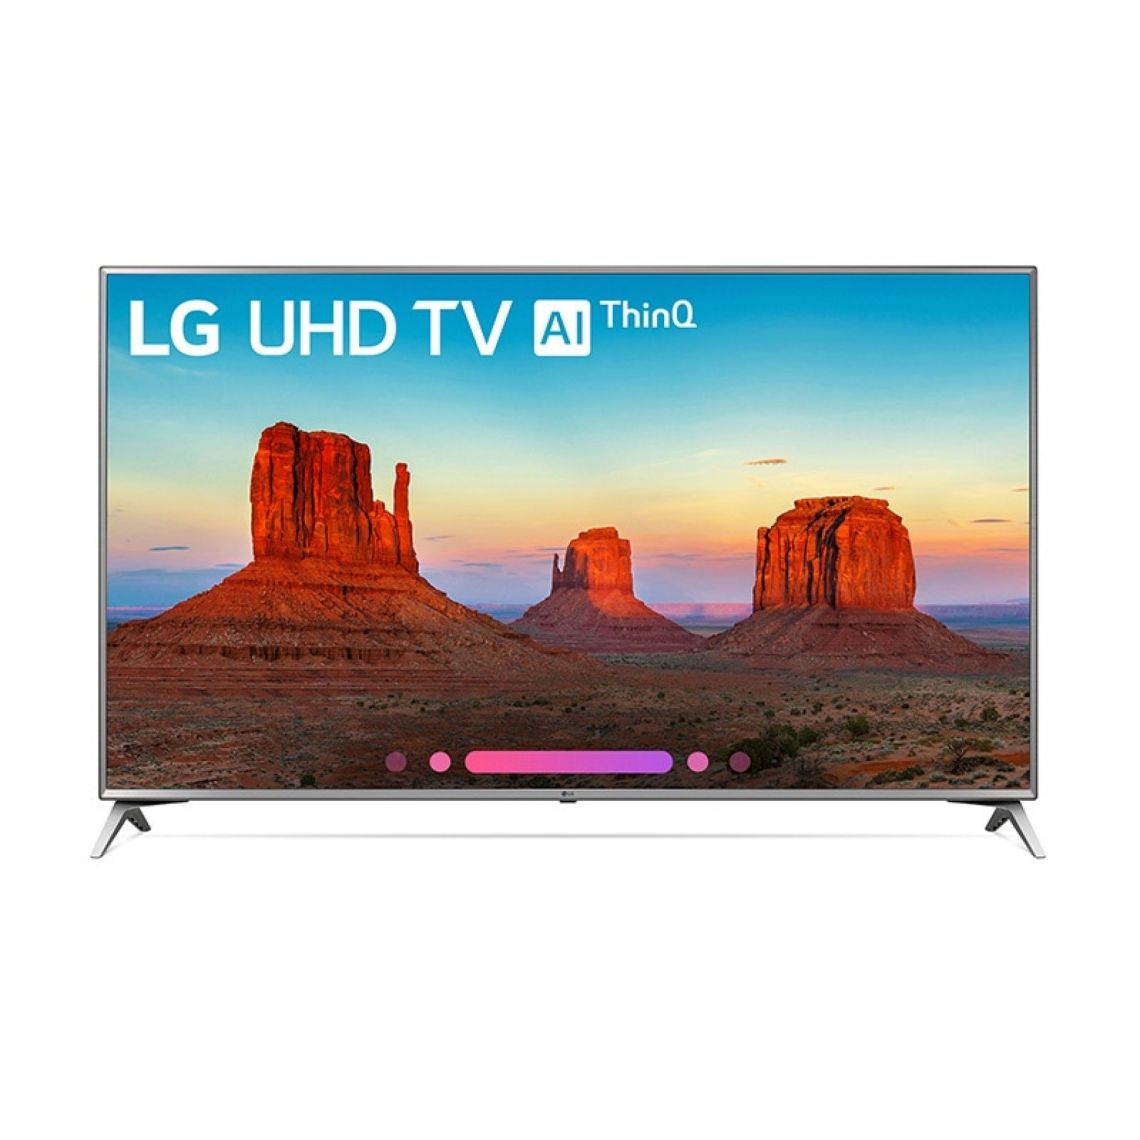 "LG UK6570 Series 70"" Class (69.5"" Diagonal) LED Ultra HD 4K Smart TV with HDR 